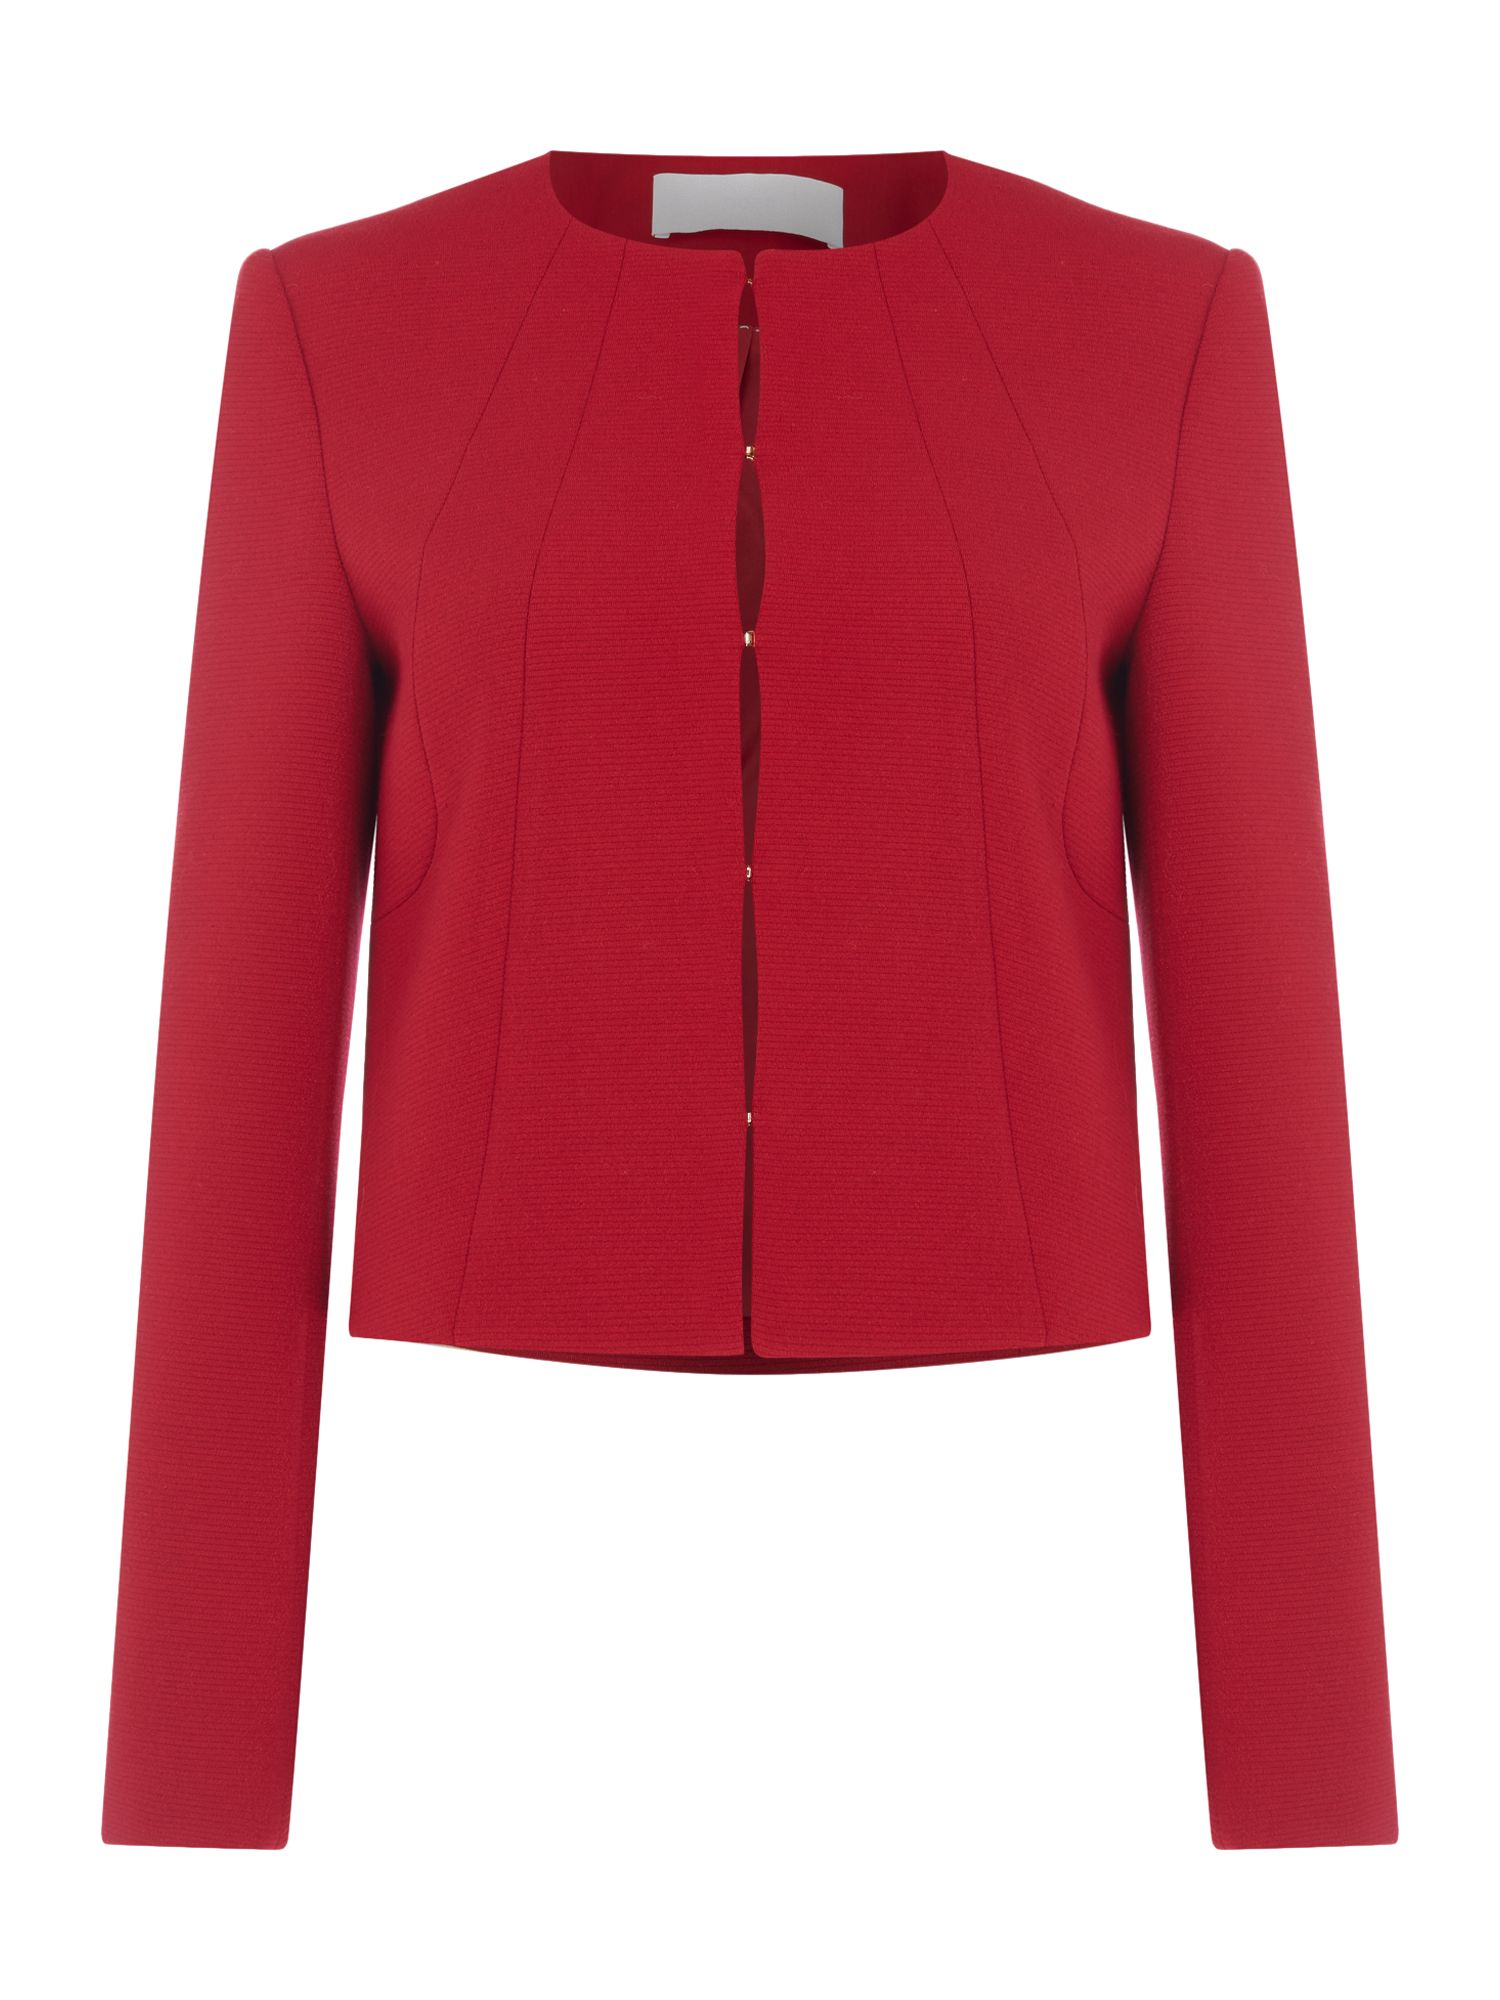 Hugo Boss Jenisa collarless textured jacket, Red